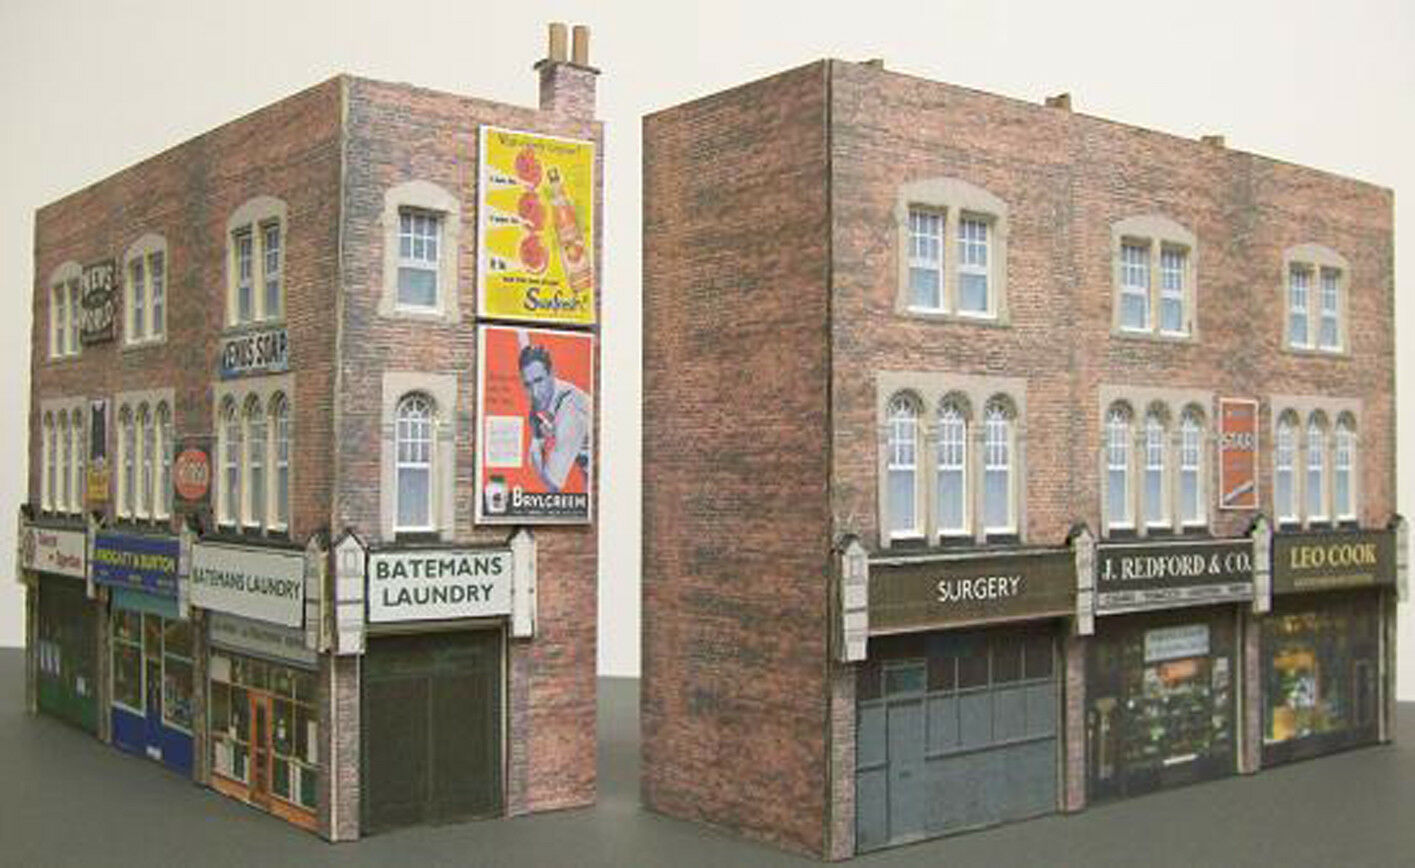 Kingsway, 00 scale, Three high street shops, two versions, Kit build service.